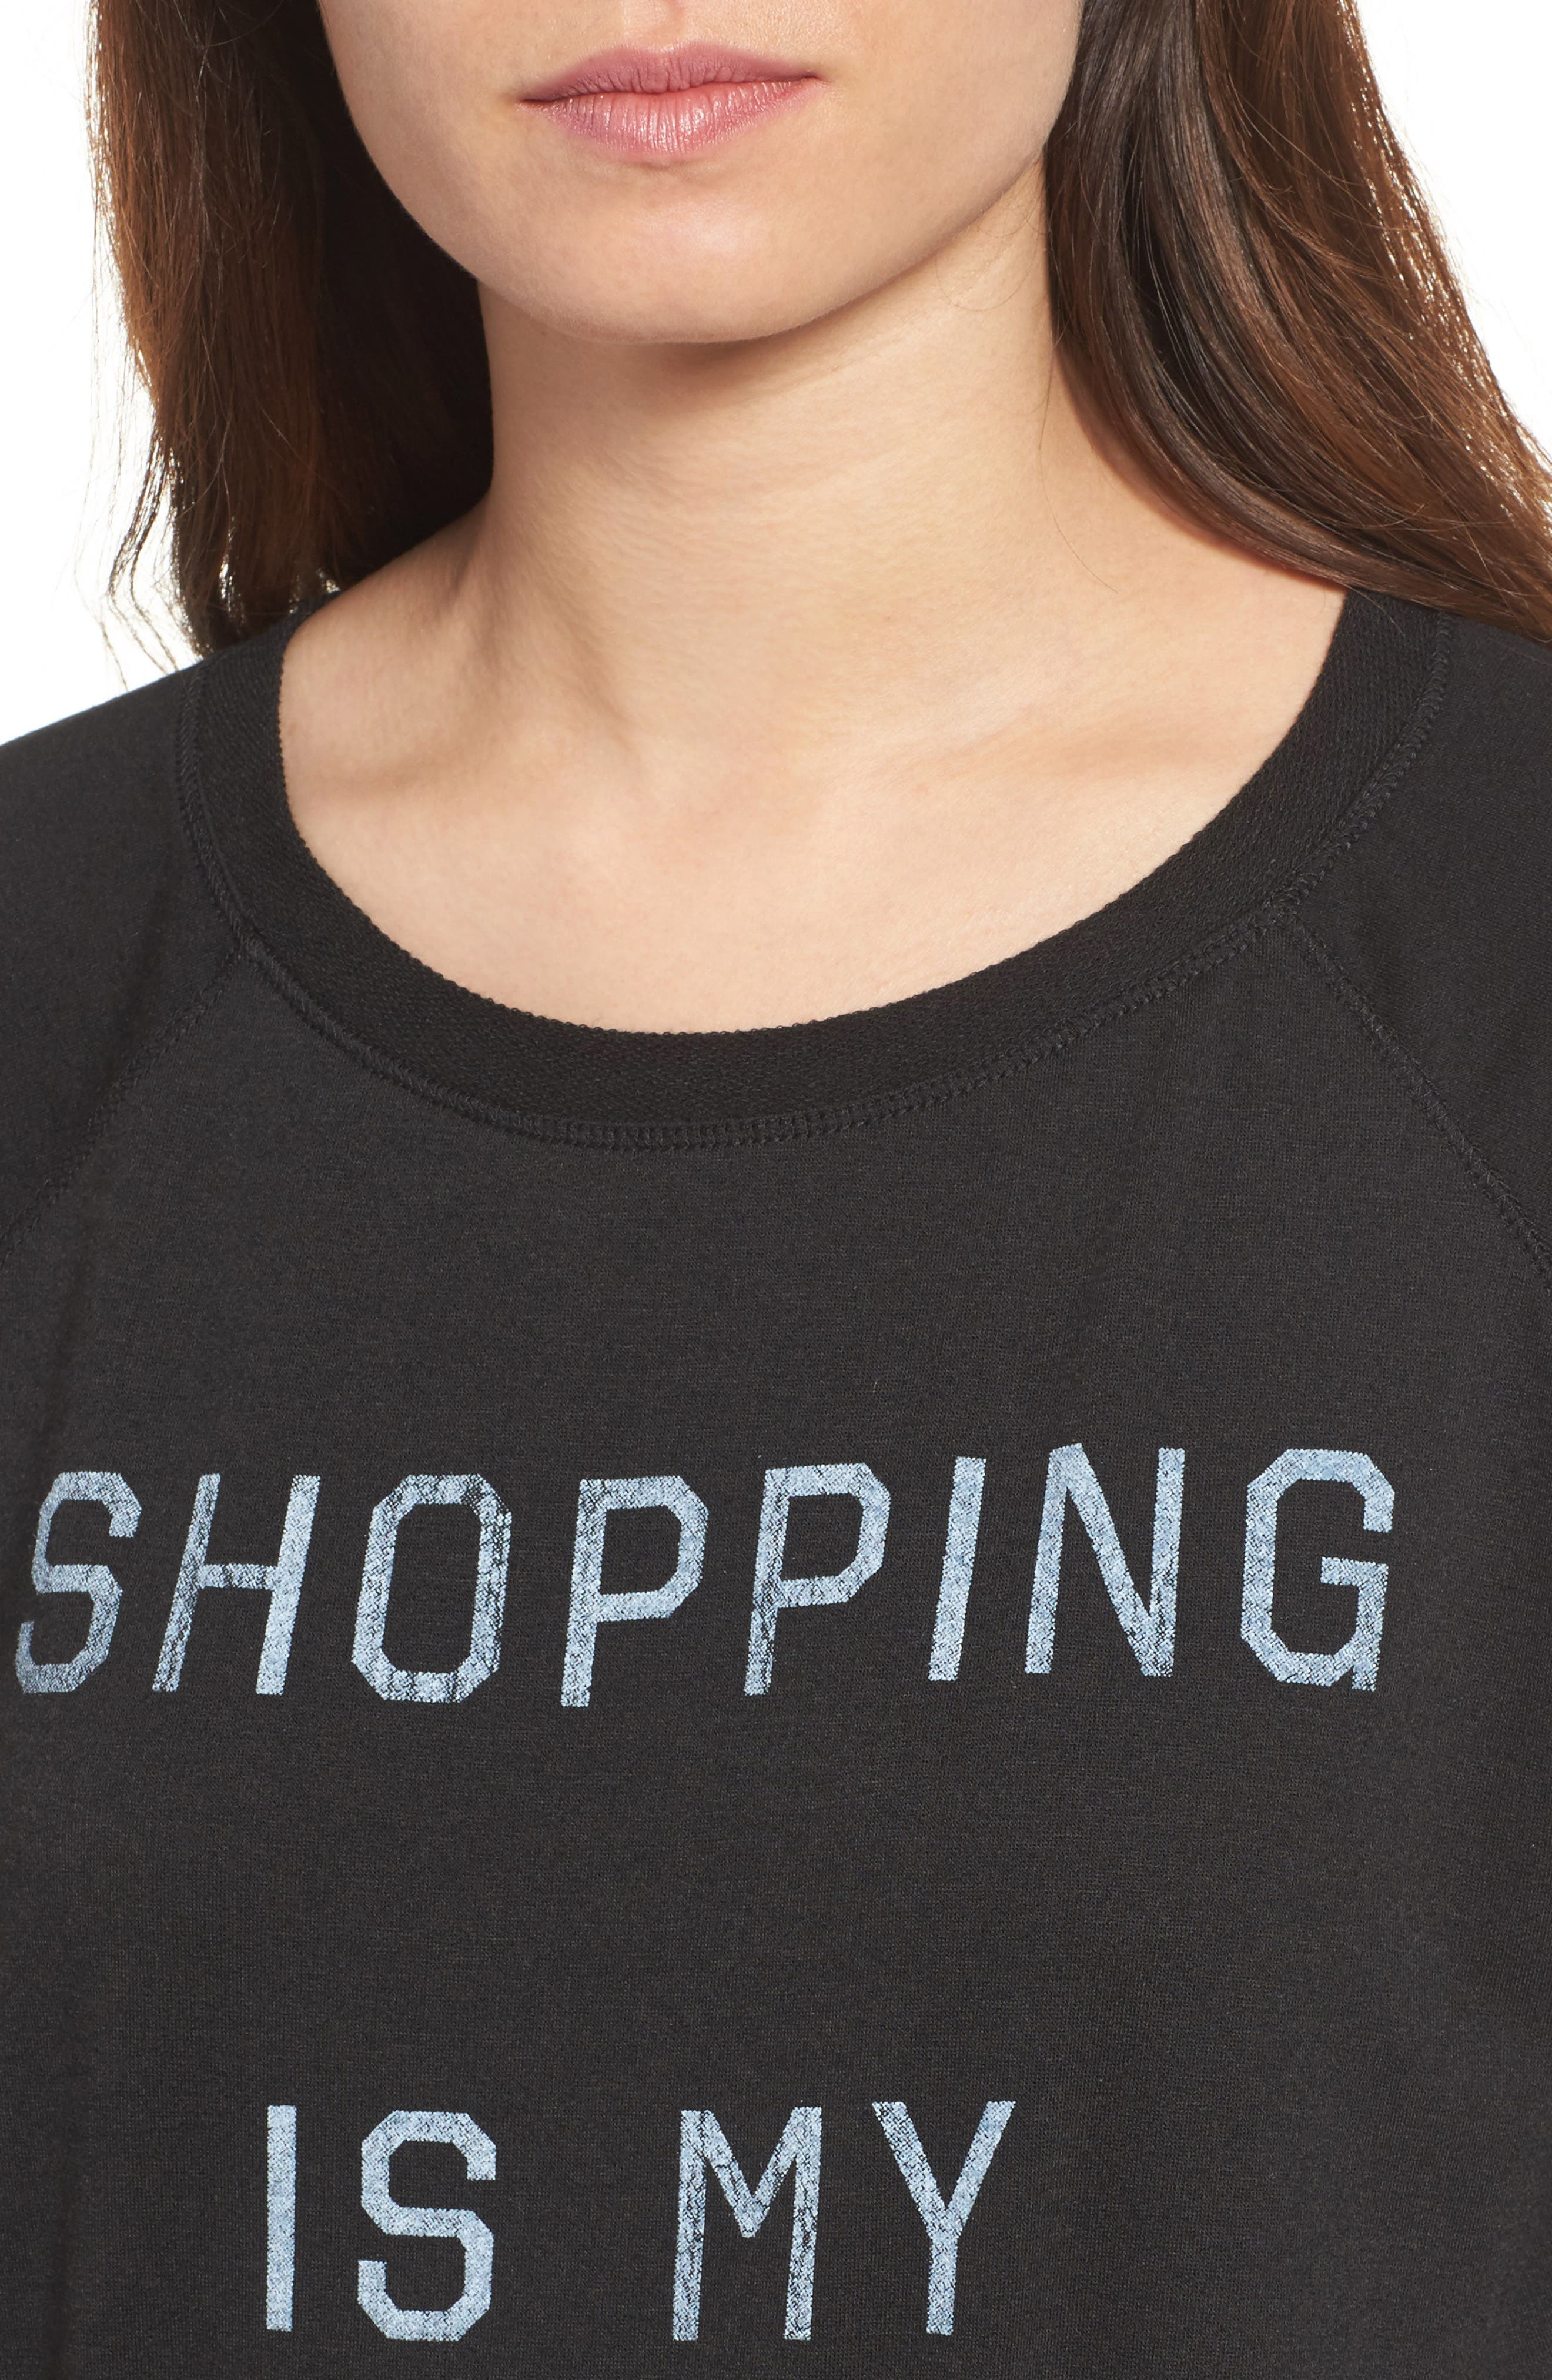 Shopping is My Cardio Tee,                             Alternate thumbnail 4, color,                             001